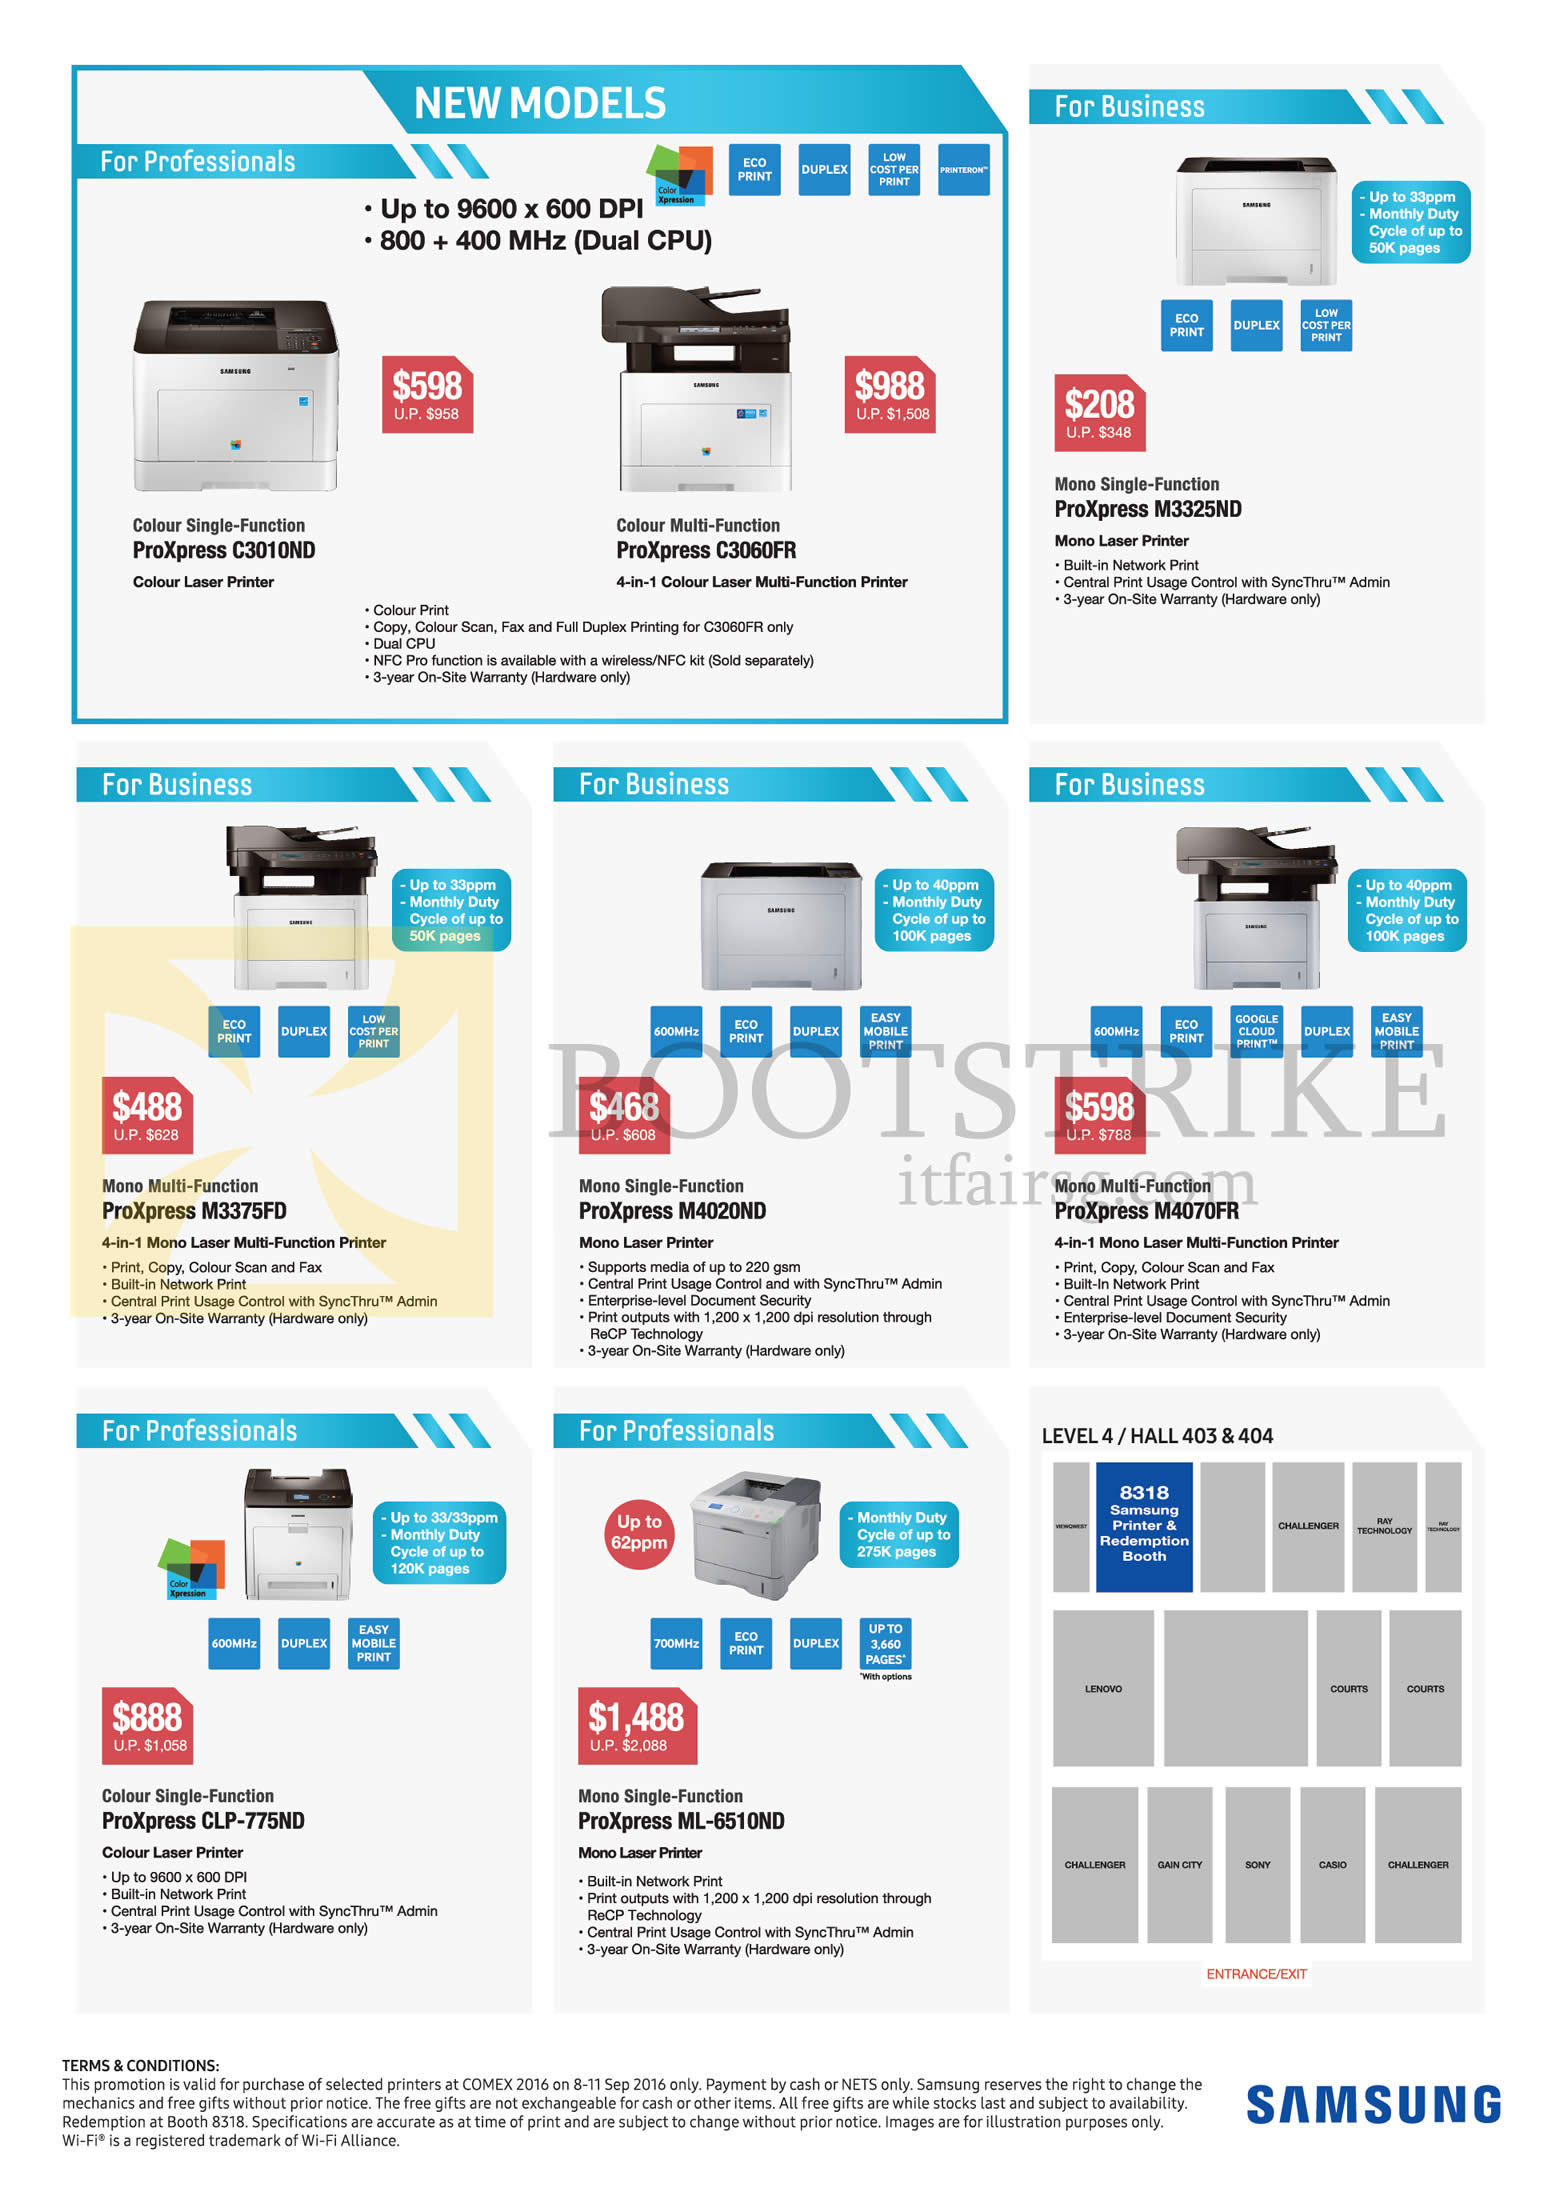 COMEX 2016 price list image brochure of Samsung Printers Laser ProXpress C3010ND, C3060FR, M3325ND, M3375FD, M4020ND, M4070FR, CLP-775ND, ML-6510ND